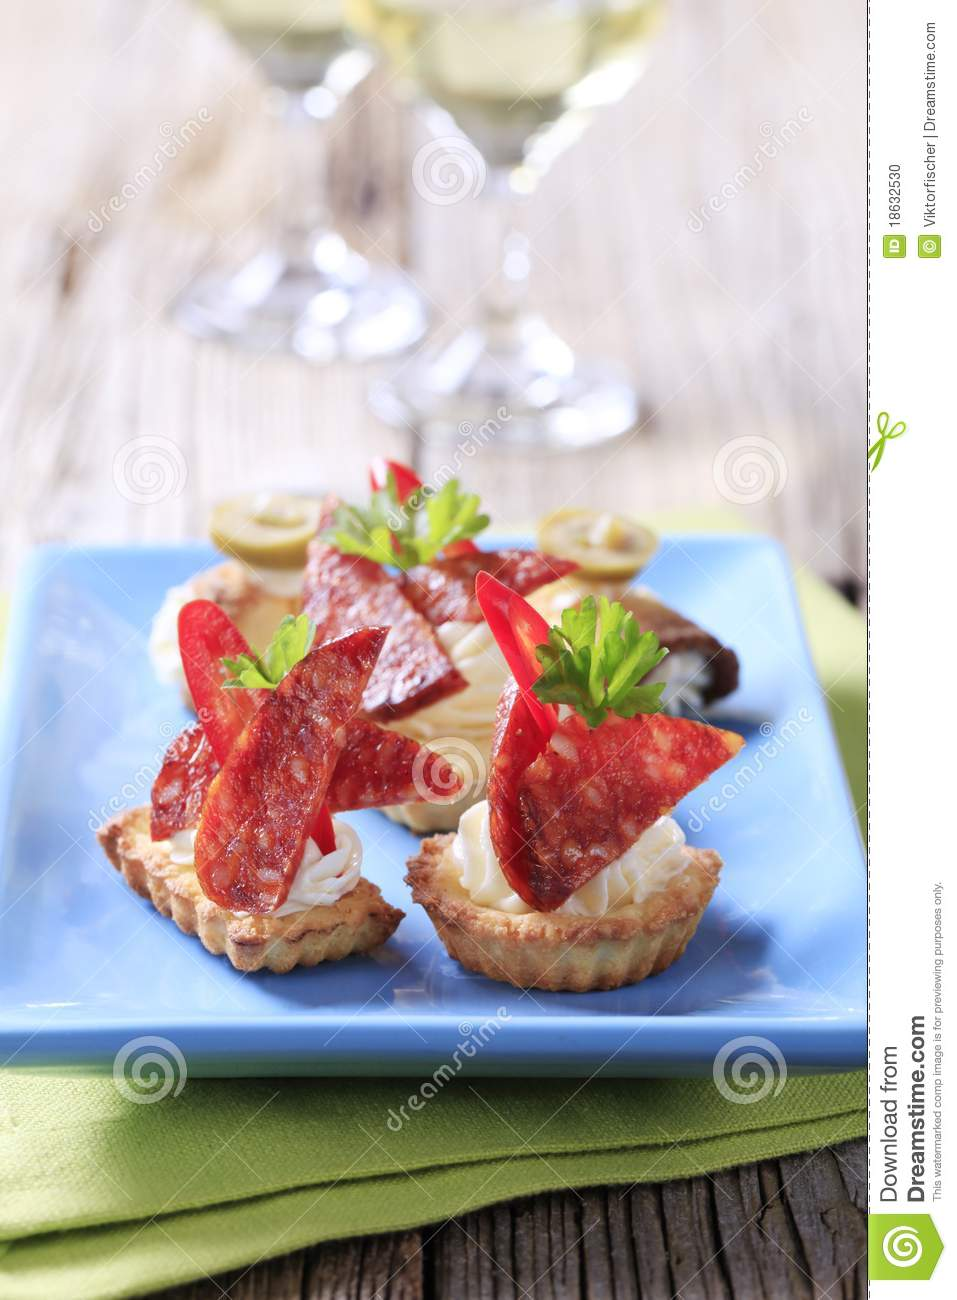 Tartlet royalty free stock photo 13052397 for How to make canape shells at home